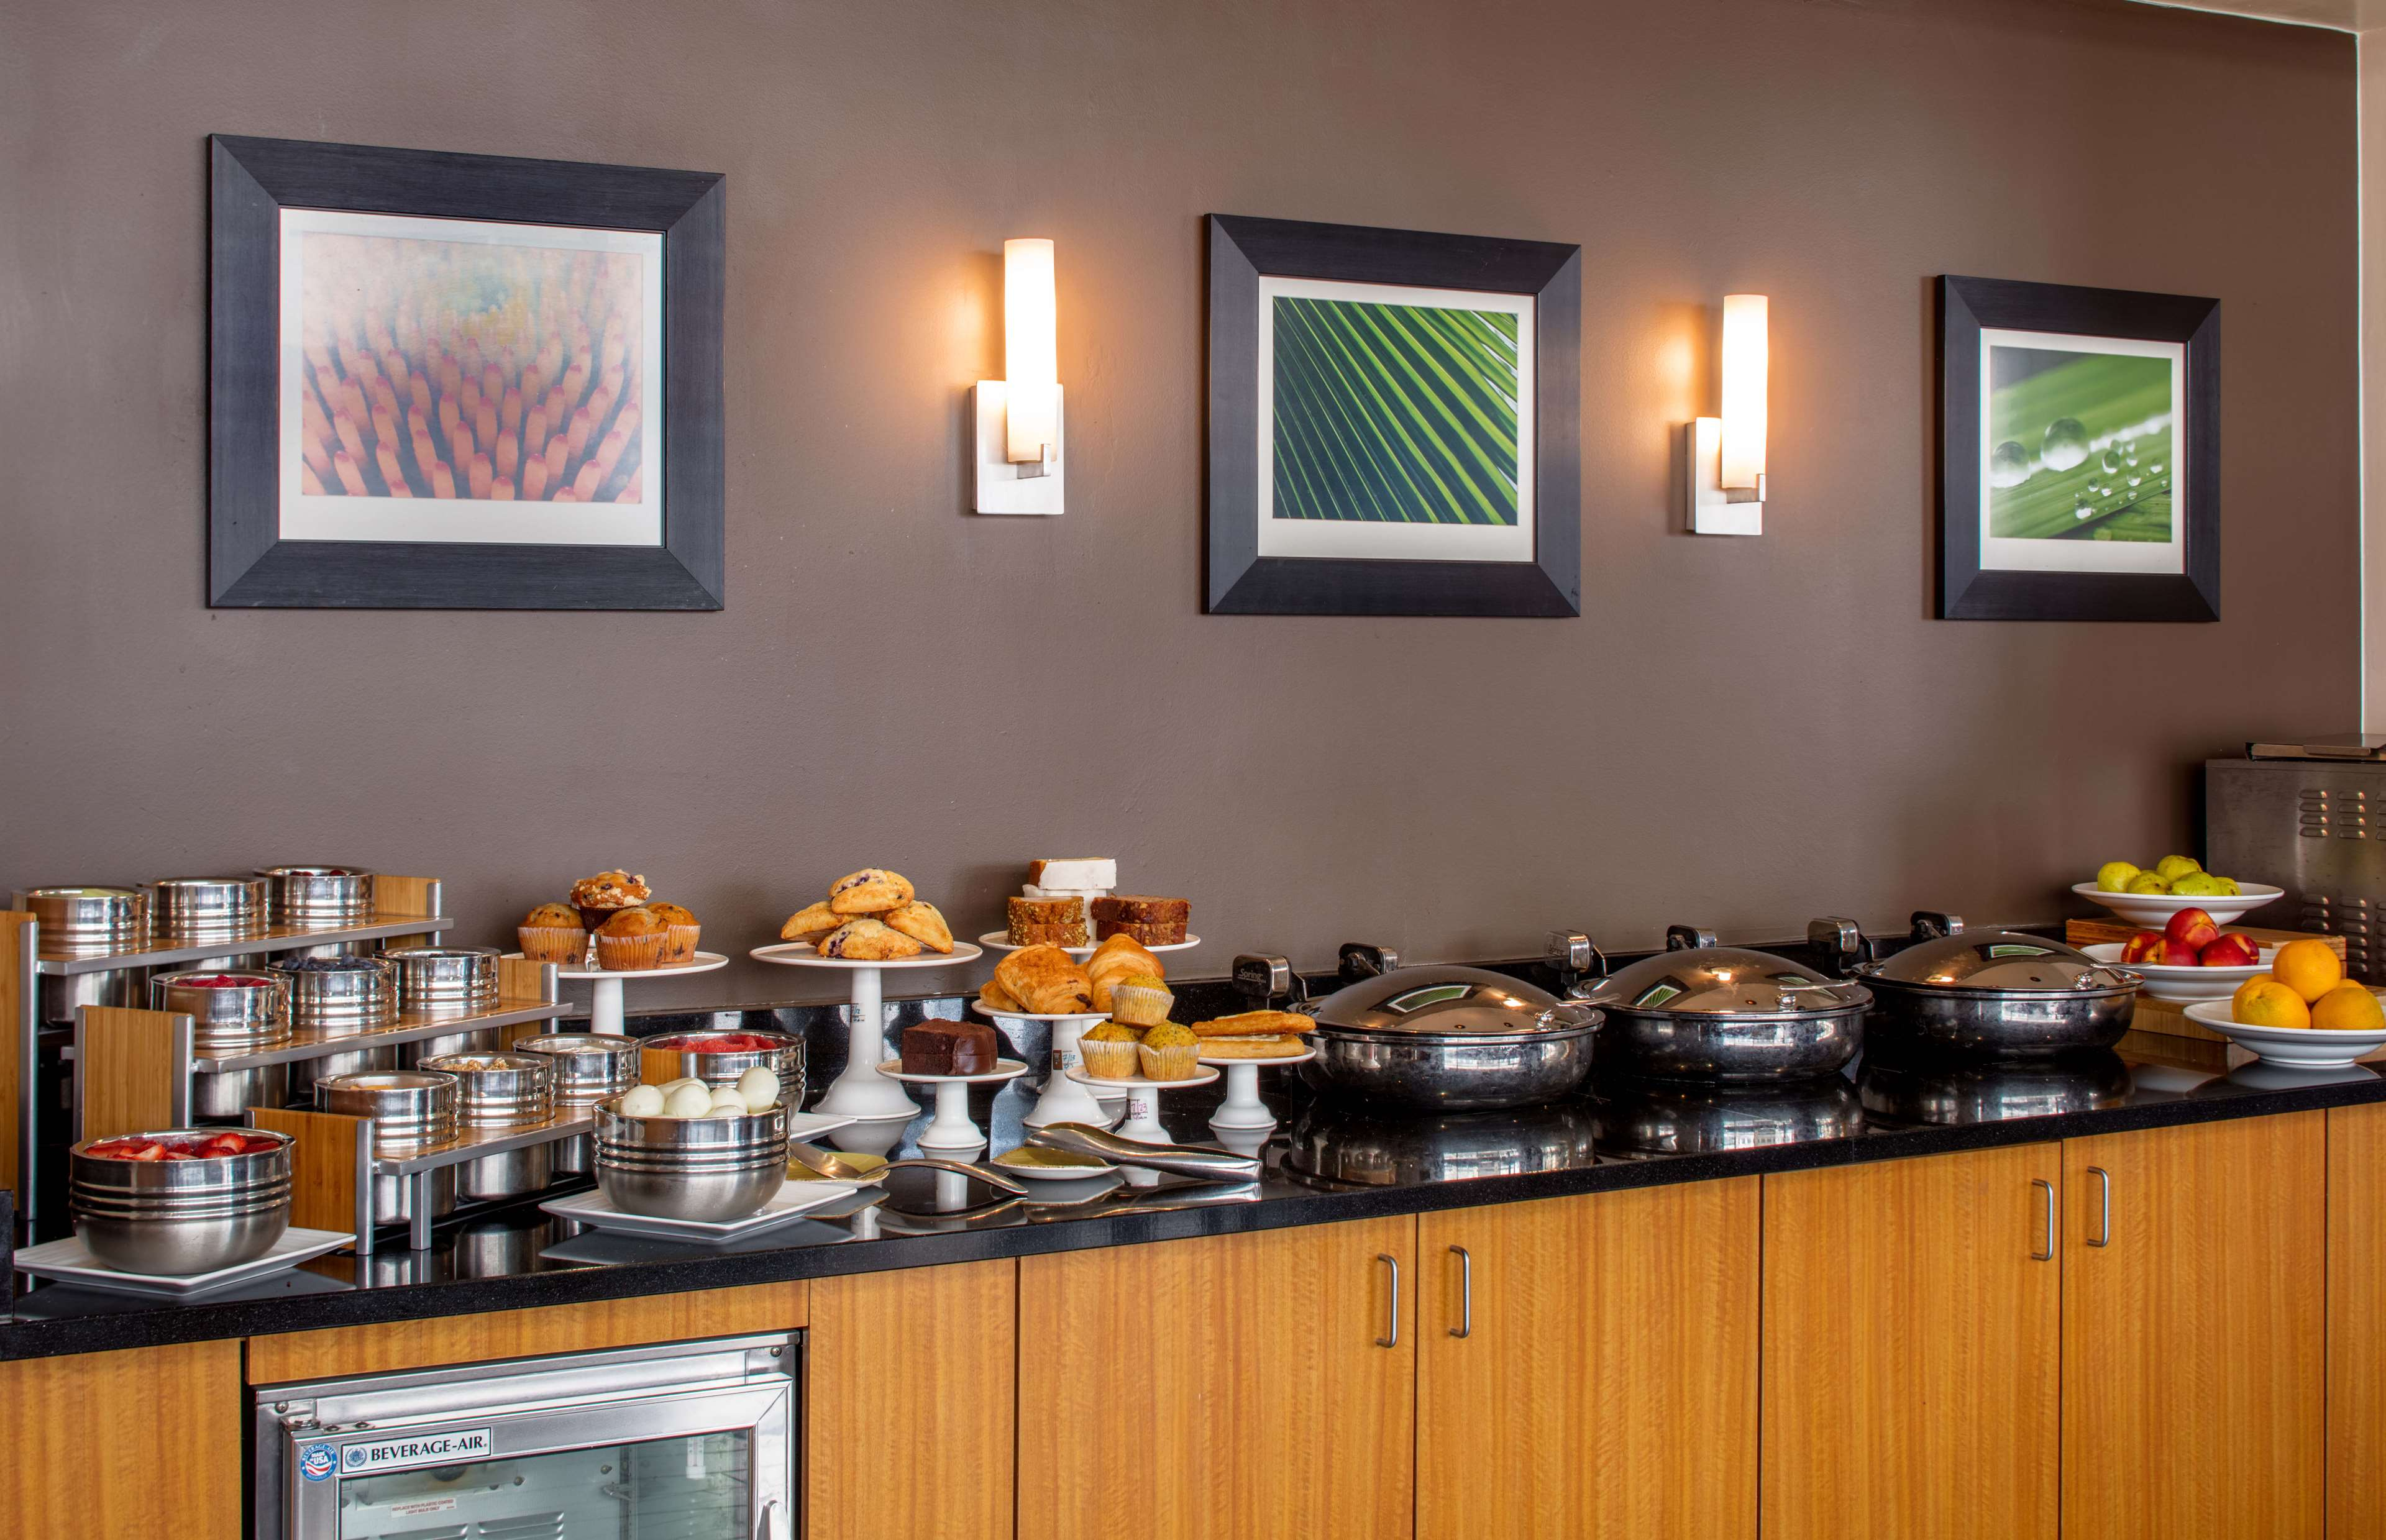 DoubleTree Suites by Hilton Hotel Minneapolis image 11